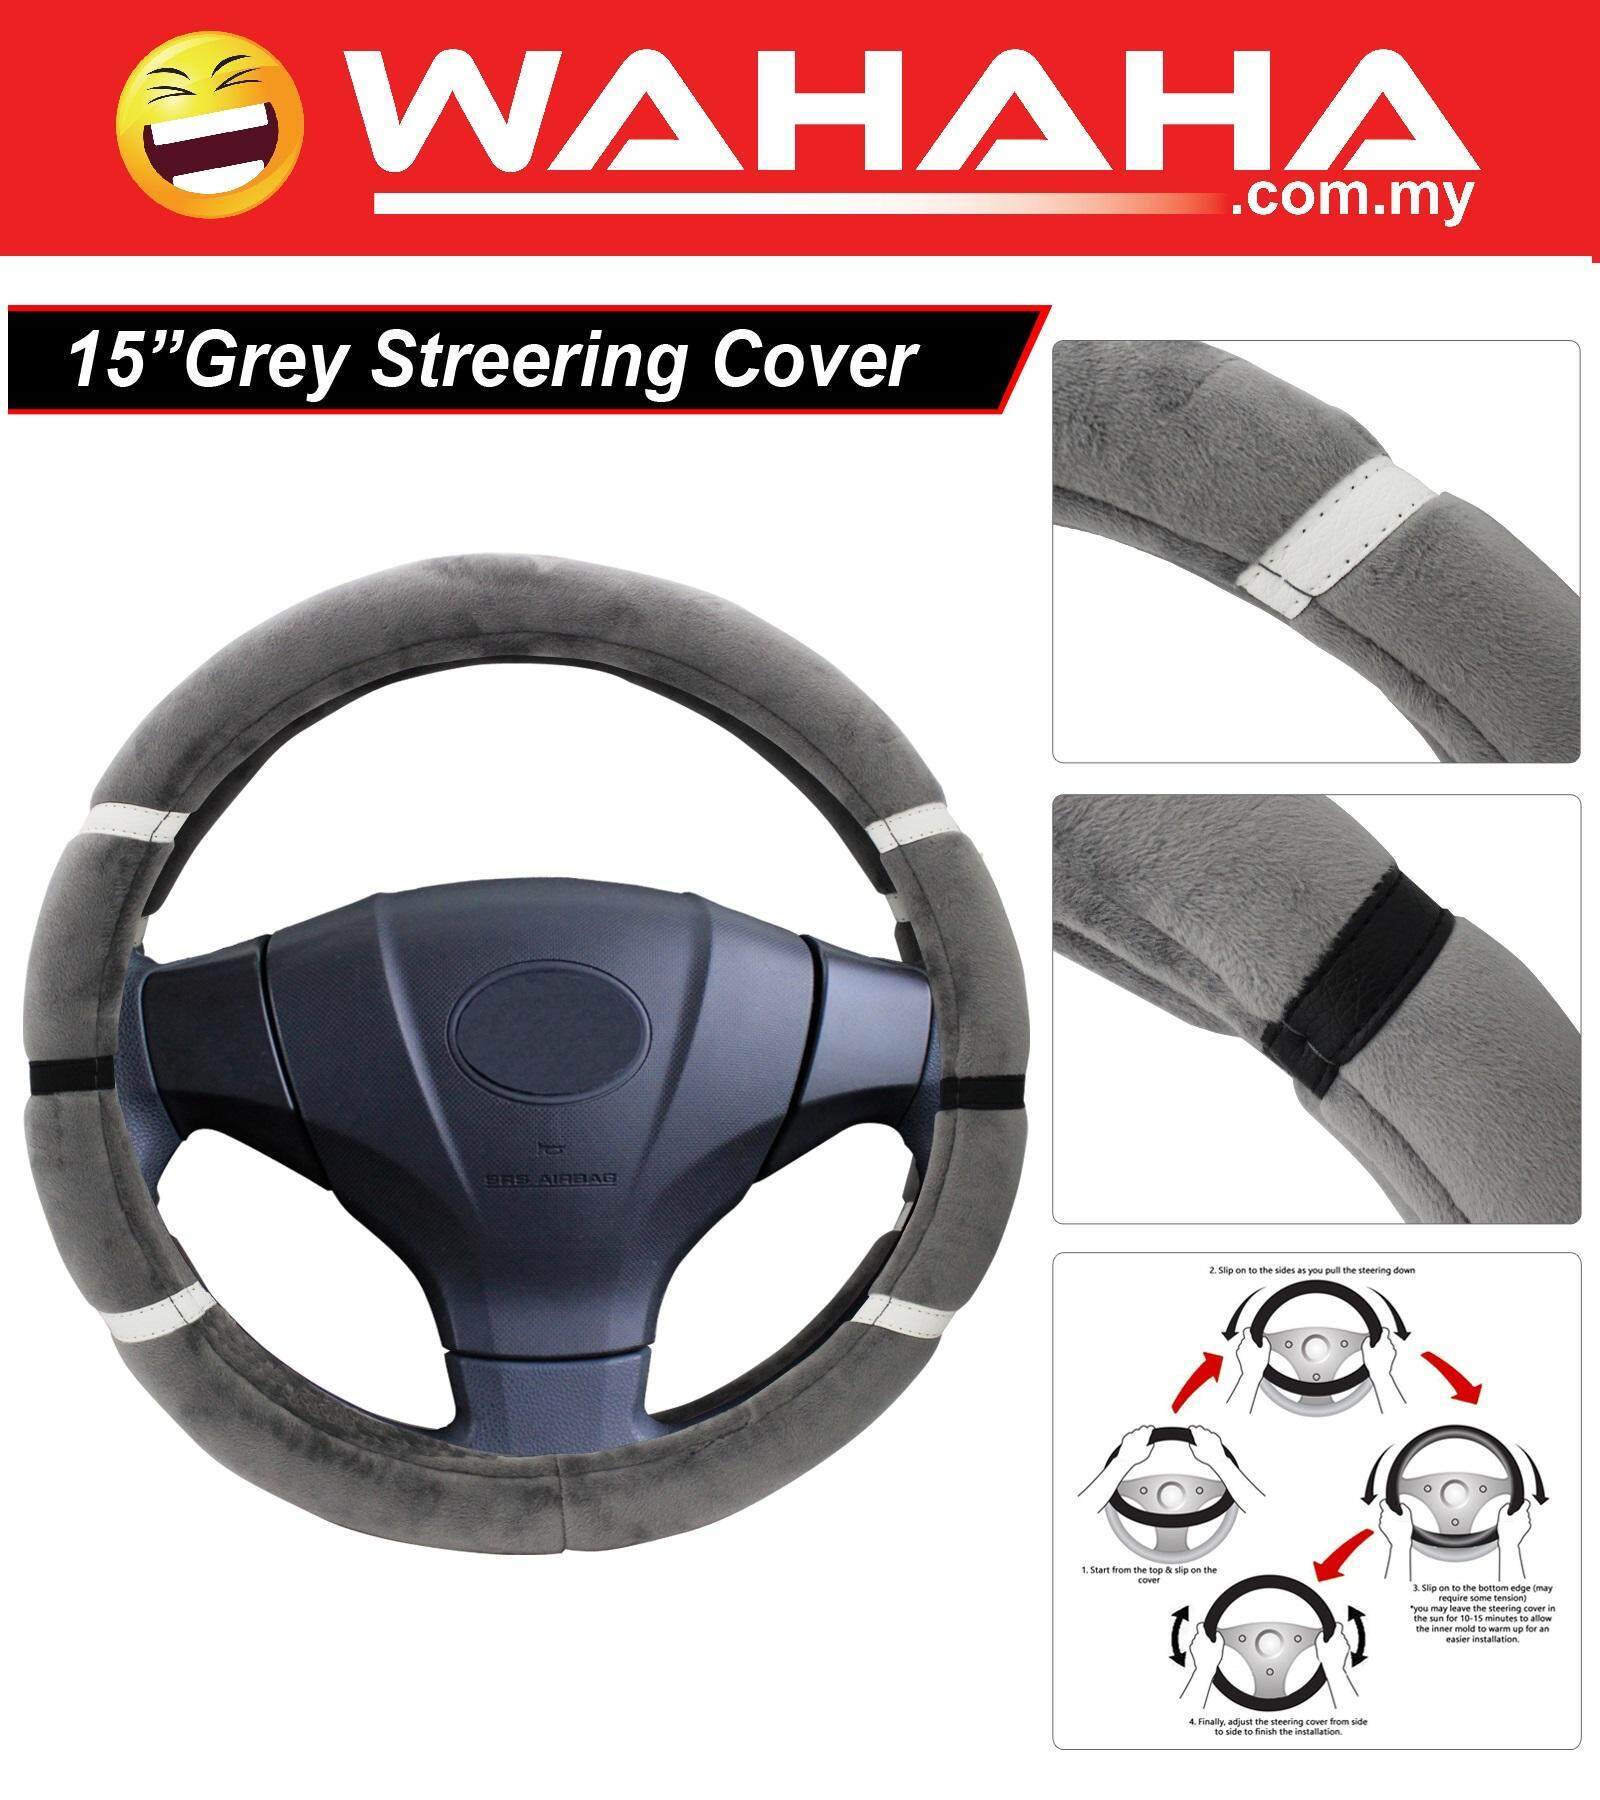 Brand New Steering Wheel 71313 Grey With White and Black Cover